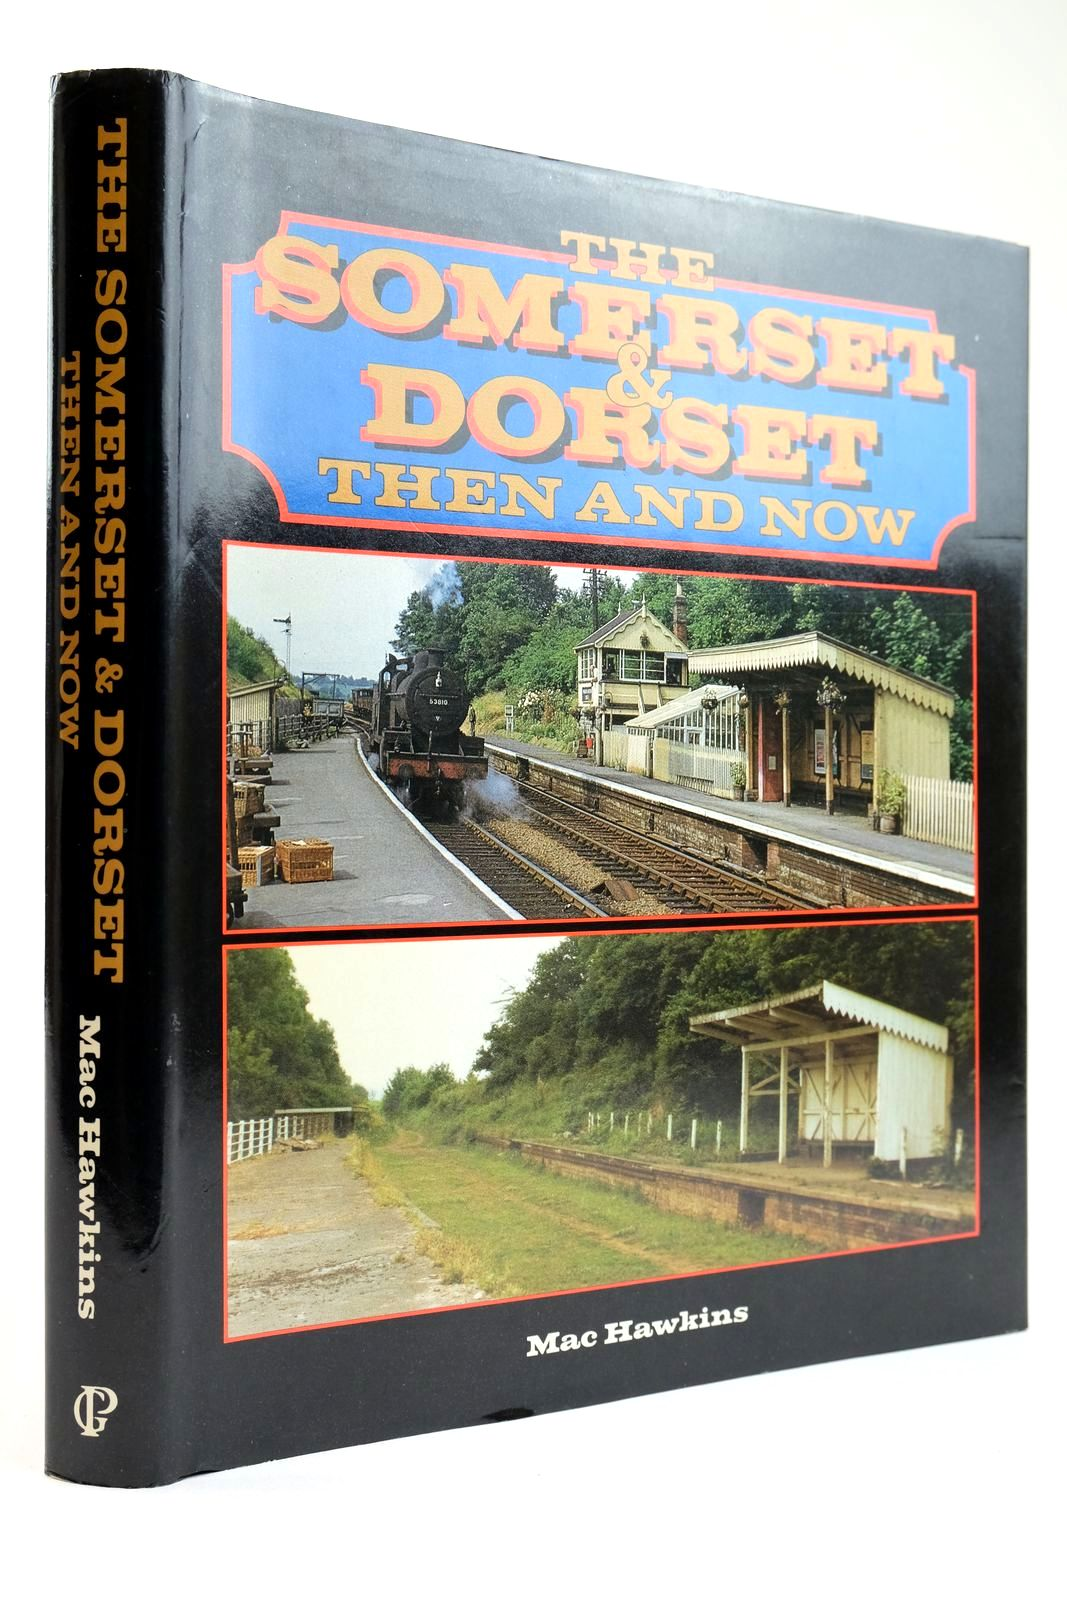 Photo of THE SOMERSET & DORSET THEN AND NOW- Stock Number: 2133555